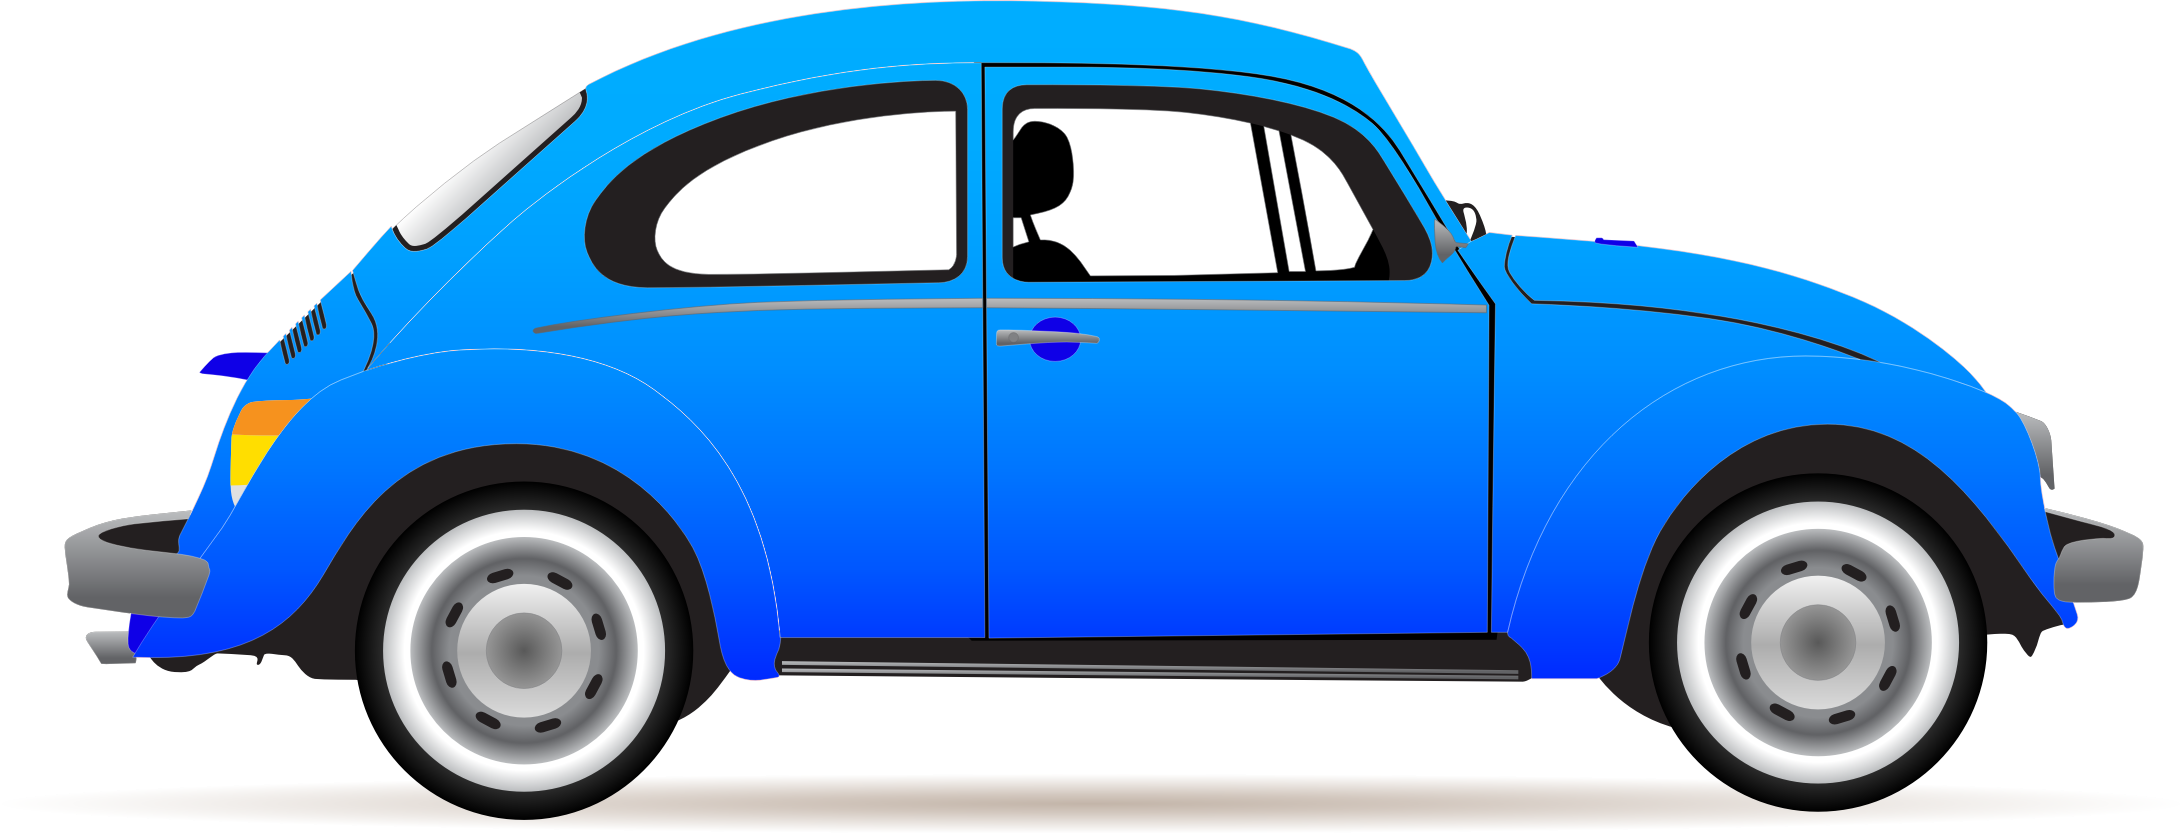 Clipart cars profile. Blue beetle painted rocks